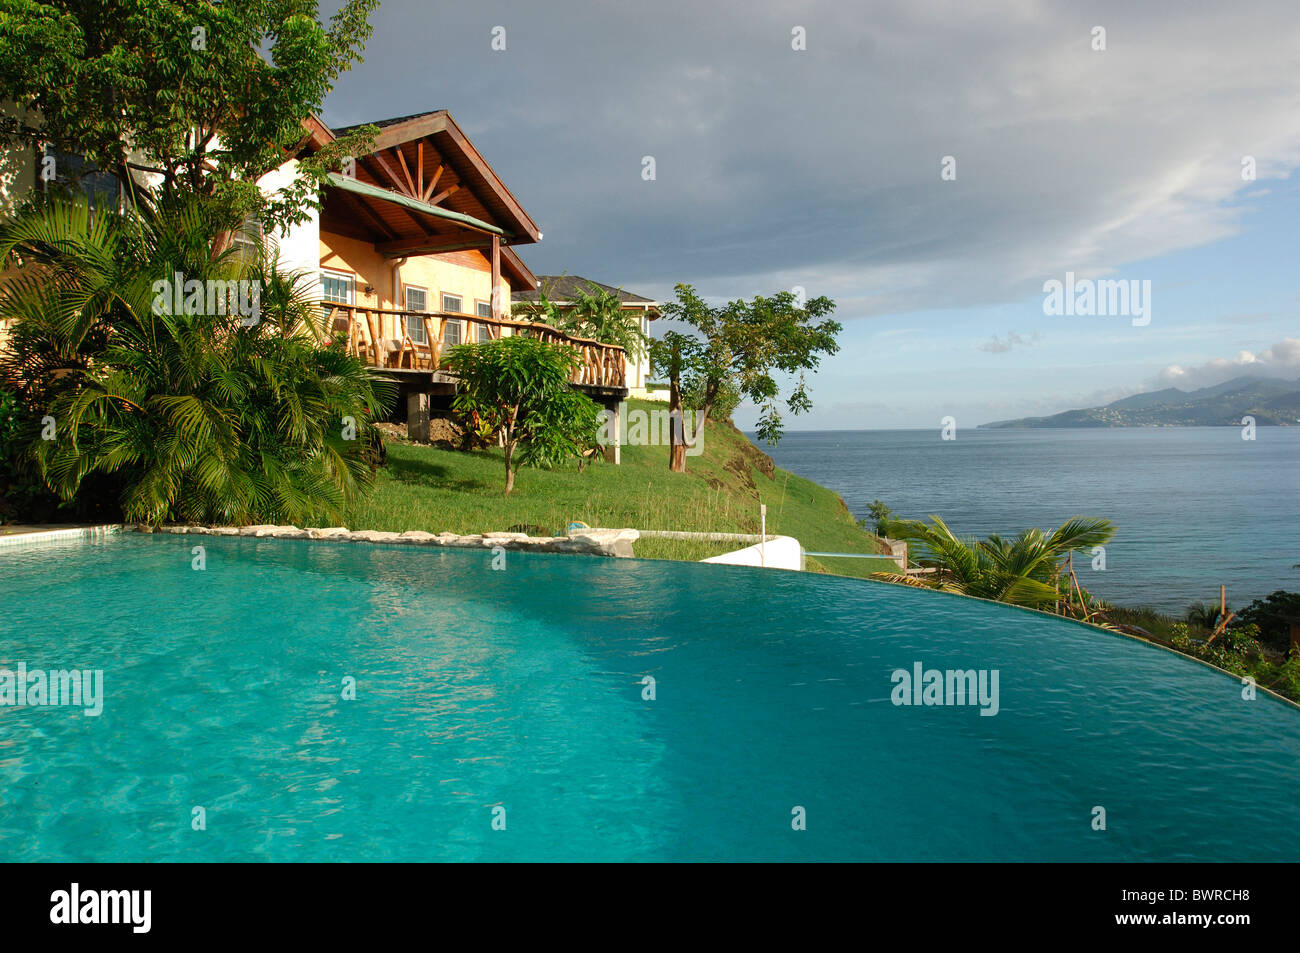 Grenada maca bana villas caribbean island swimming pool hotel resort building house palm trees tourism trave